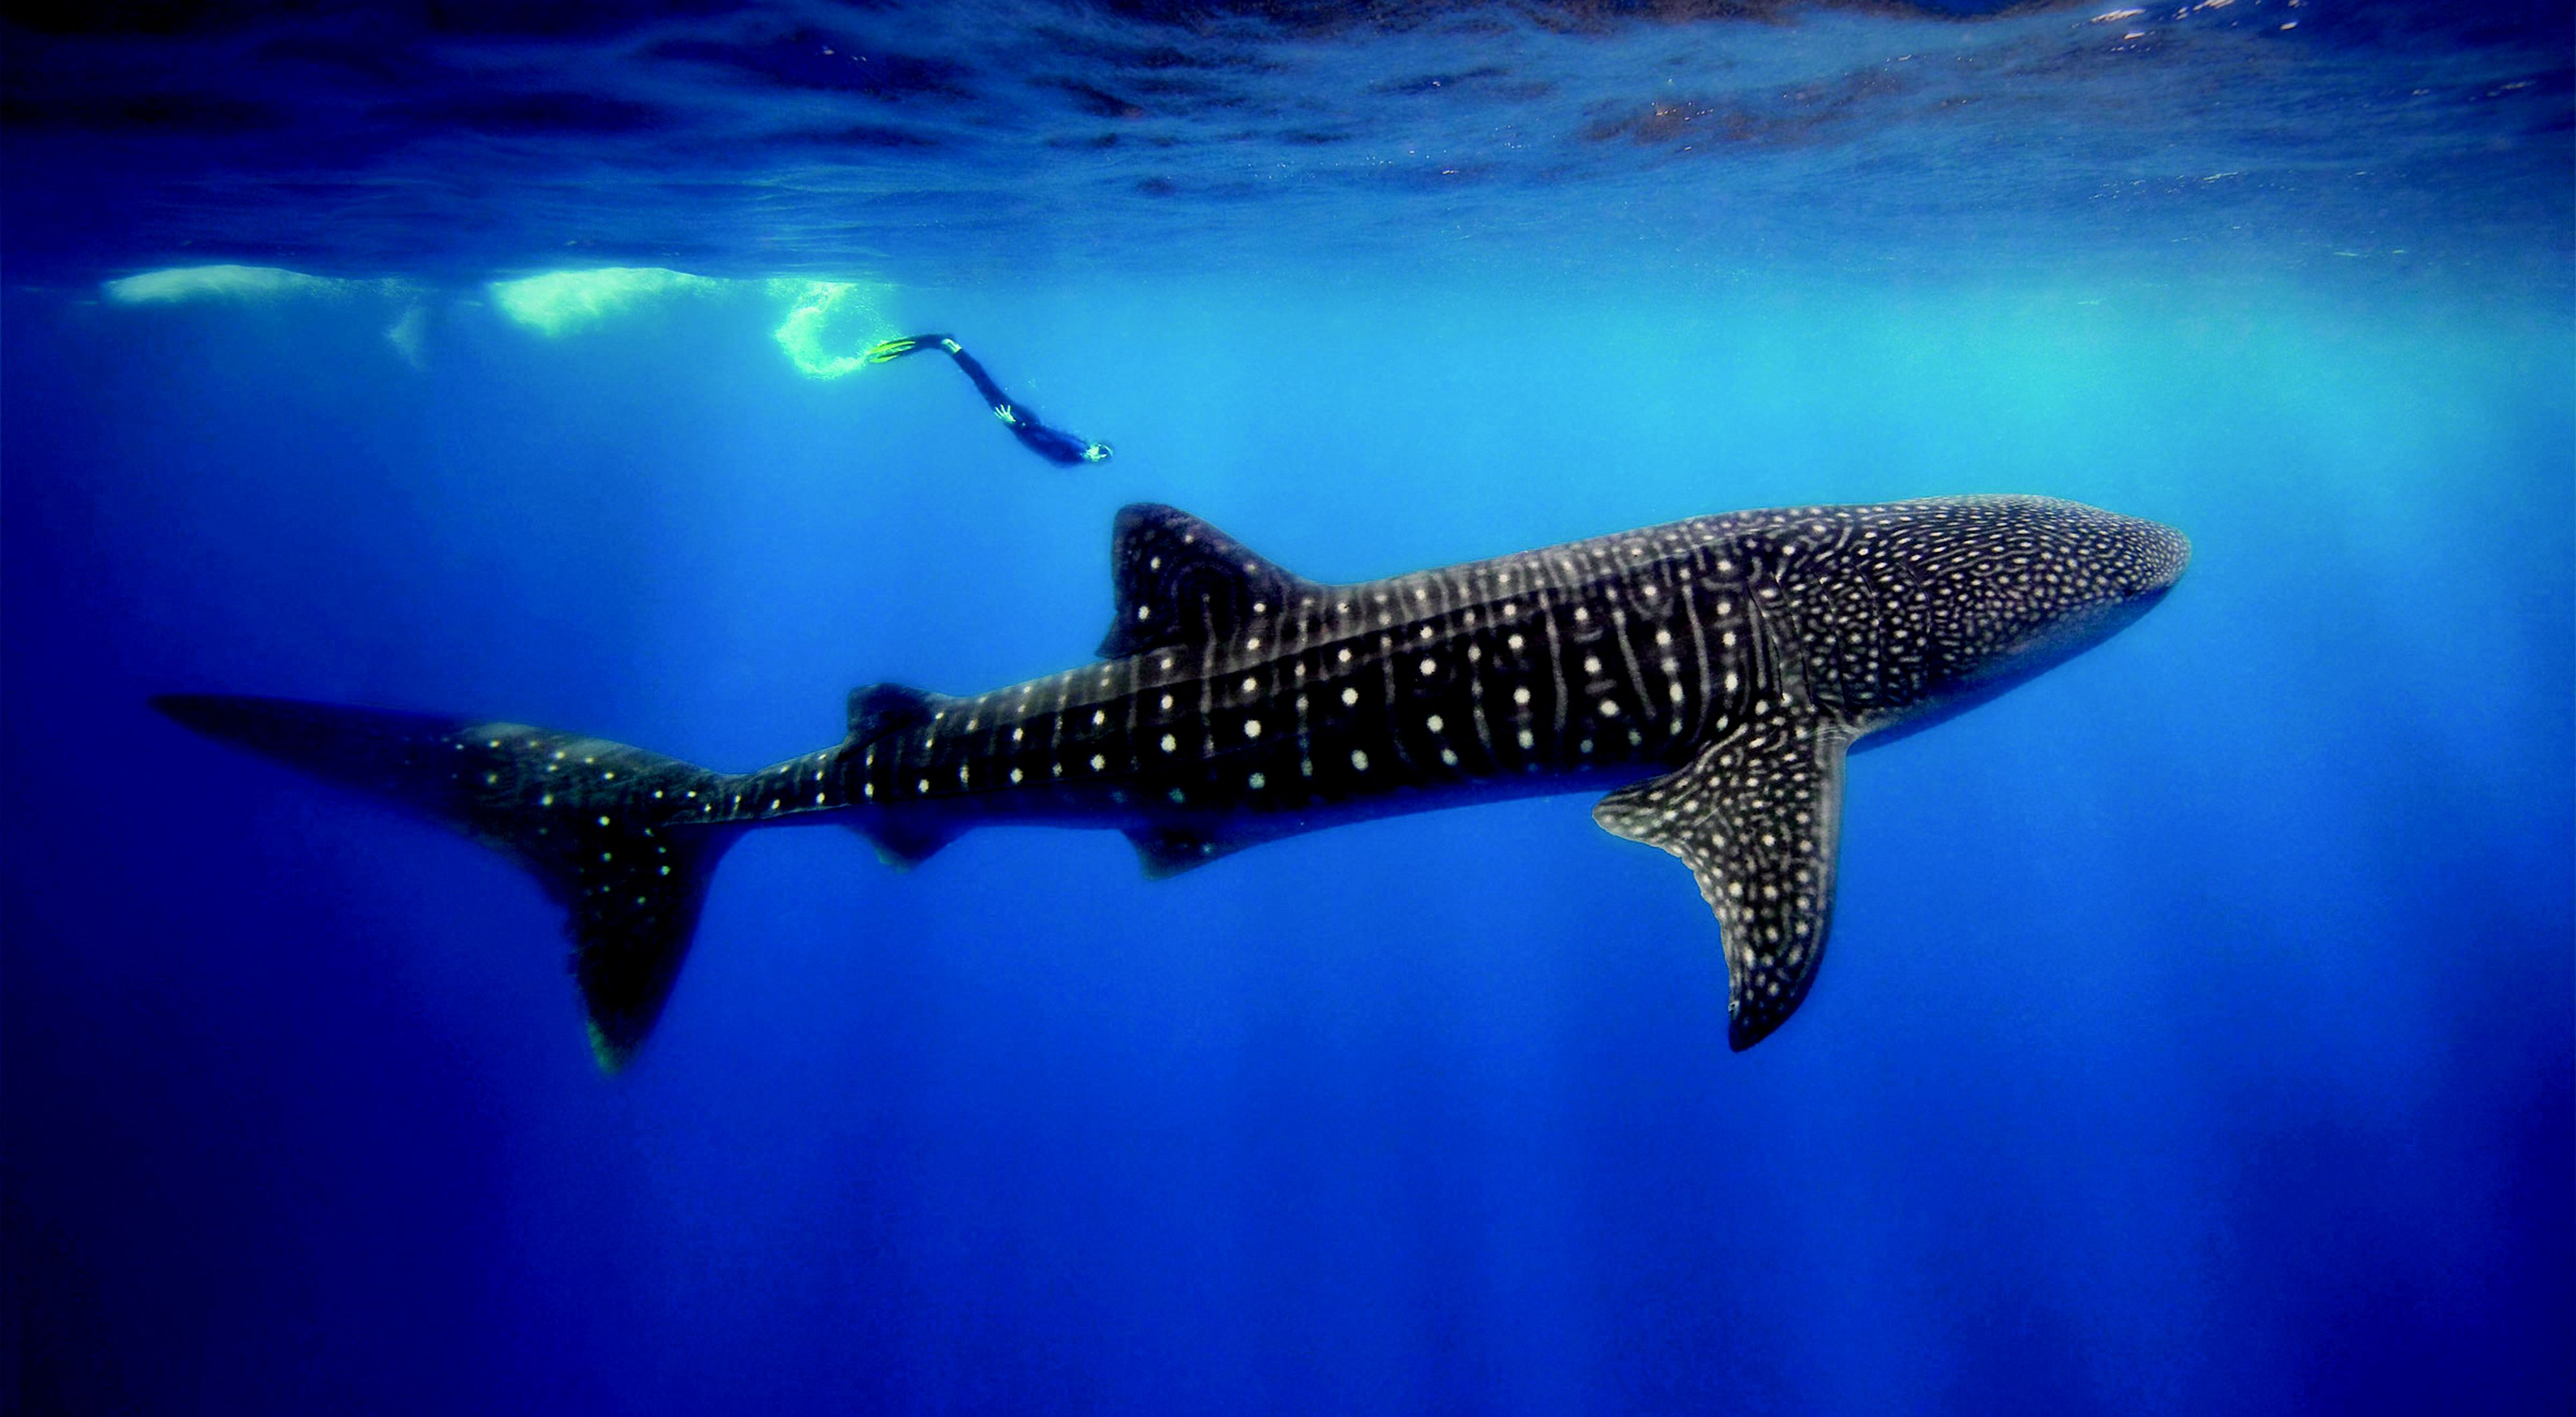 (ALL INTERNAL & LIMITED EXTERNAL RIGHTS) Whale Shark at Gladden Spit in Belize's Barrier Reef. Photo Credit: © Tony Rath